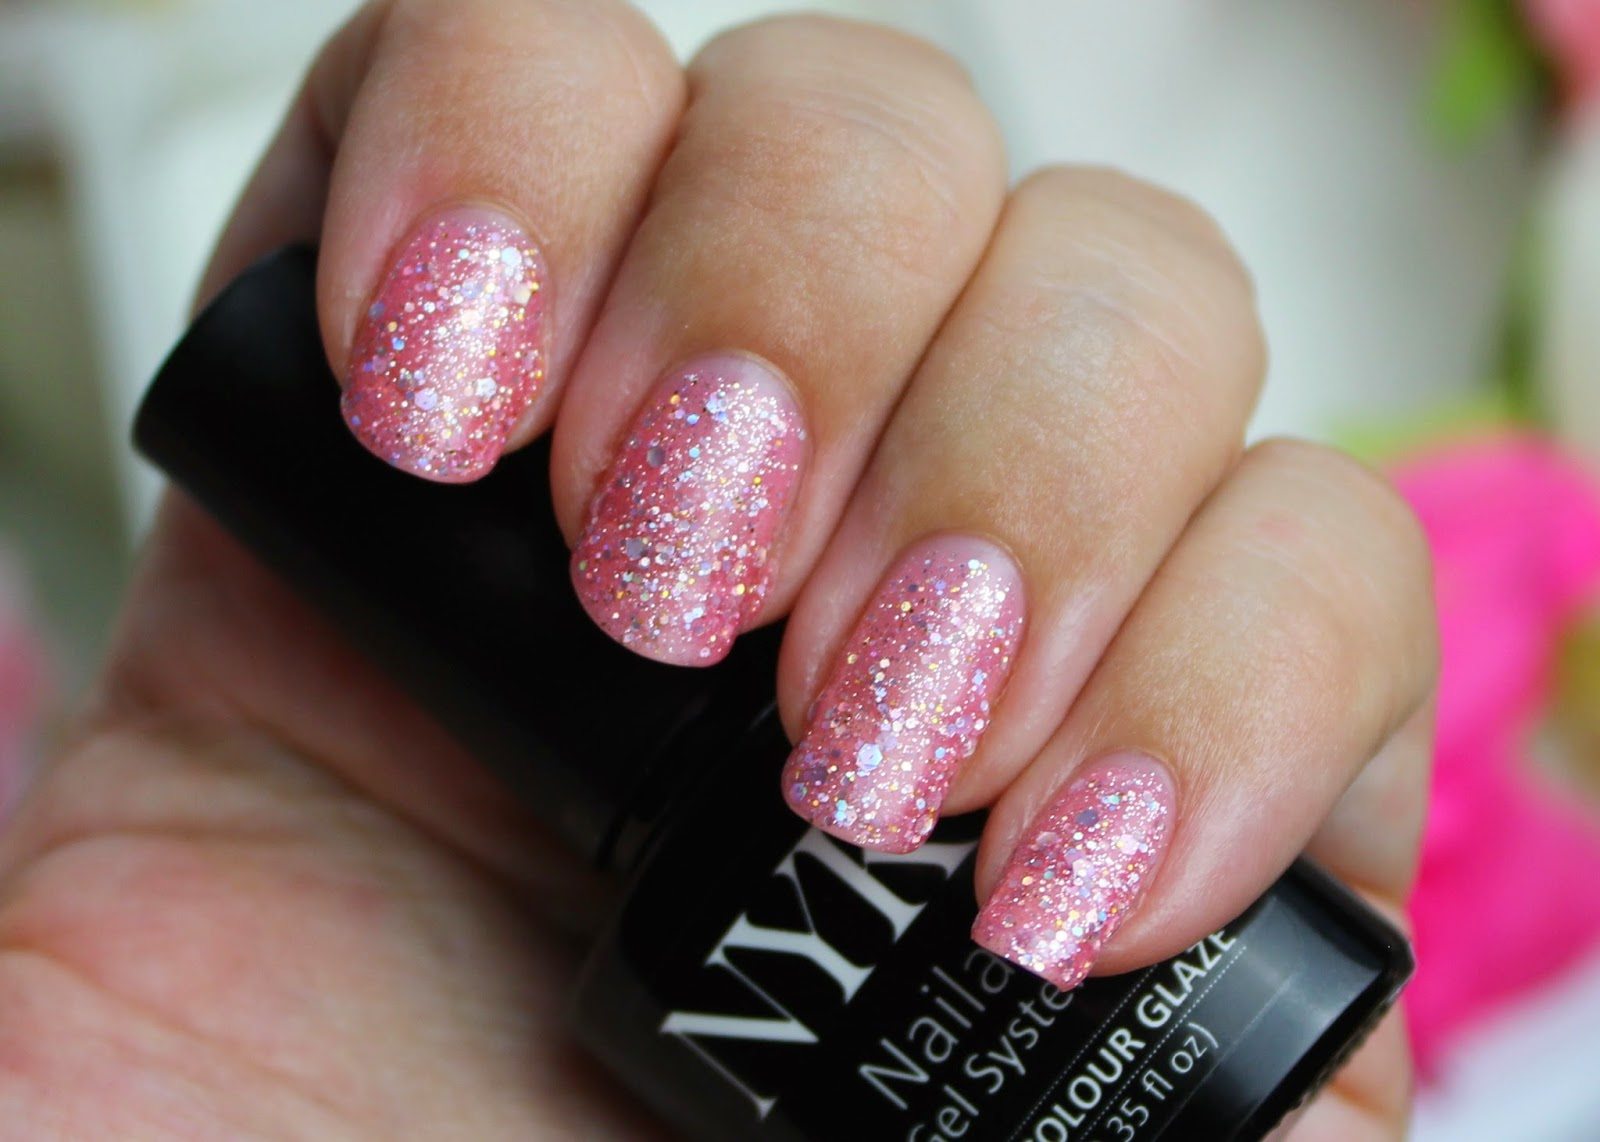 nails: nyk1 secrets nailac at home professional gel polish system